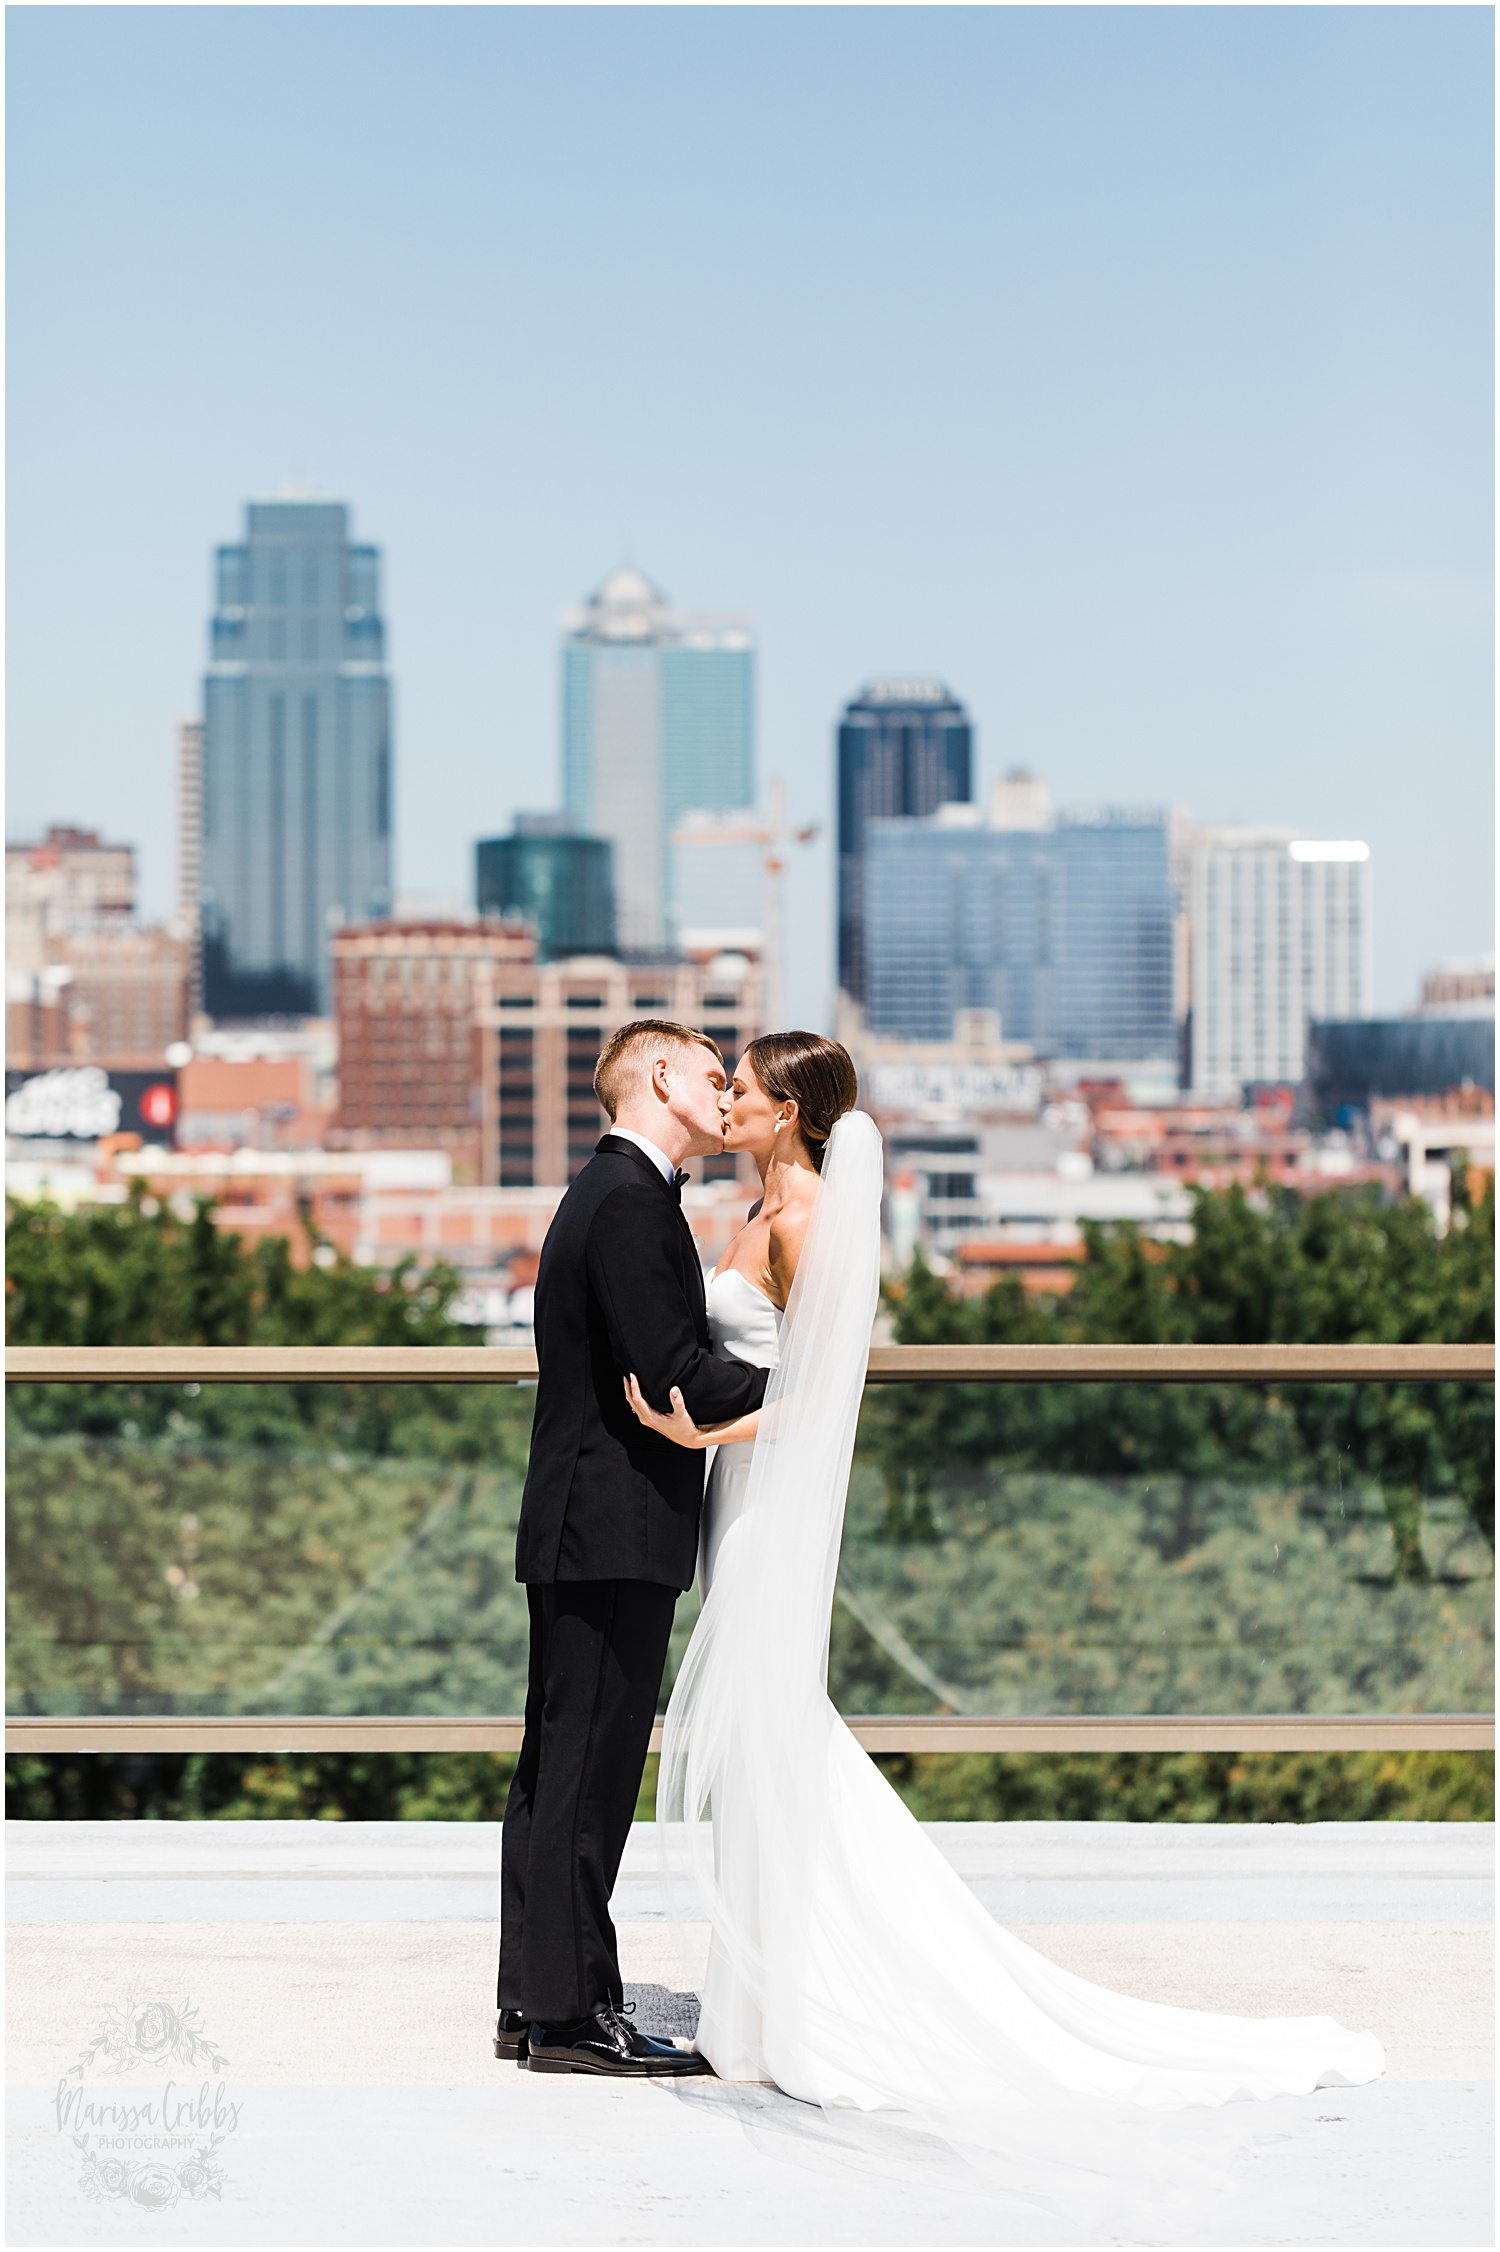 JOANNE & GEORGE MARRIED BLOG | MARISSA CRIBBS PHOTOGRAPHY | THE ABBOTT | KANSAS CITY WEDDING PHOTOS_9028.jpg